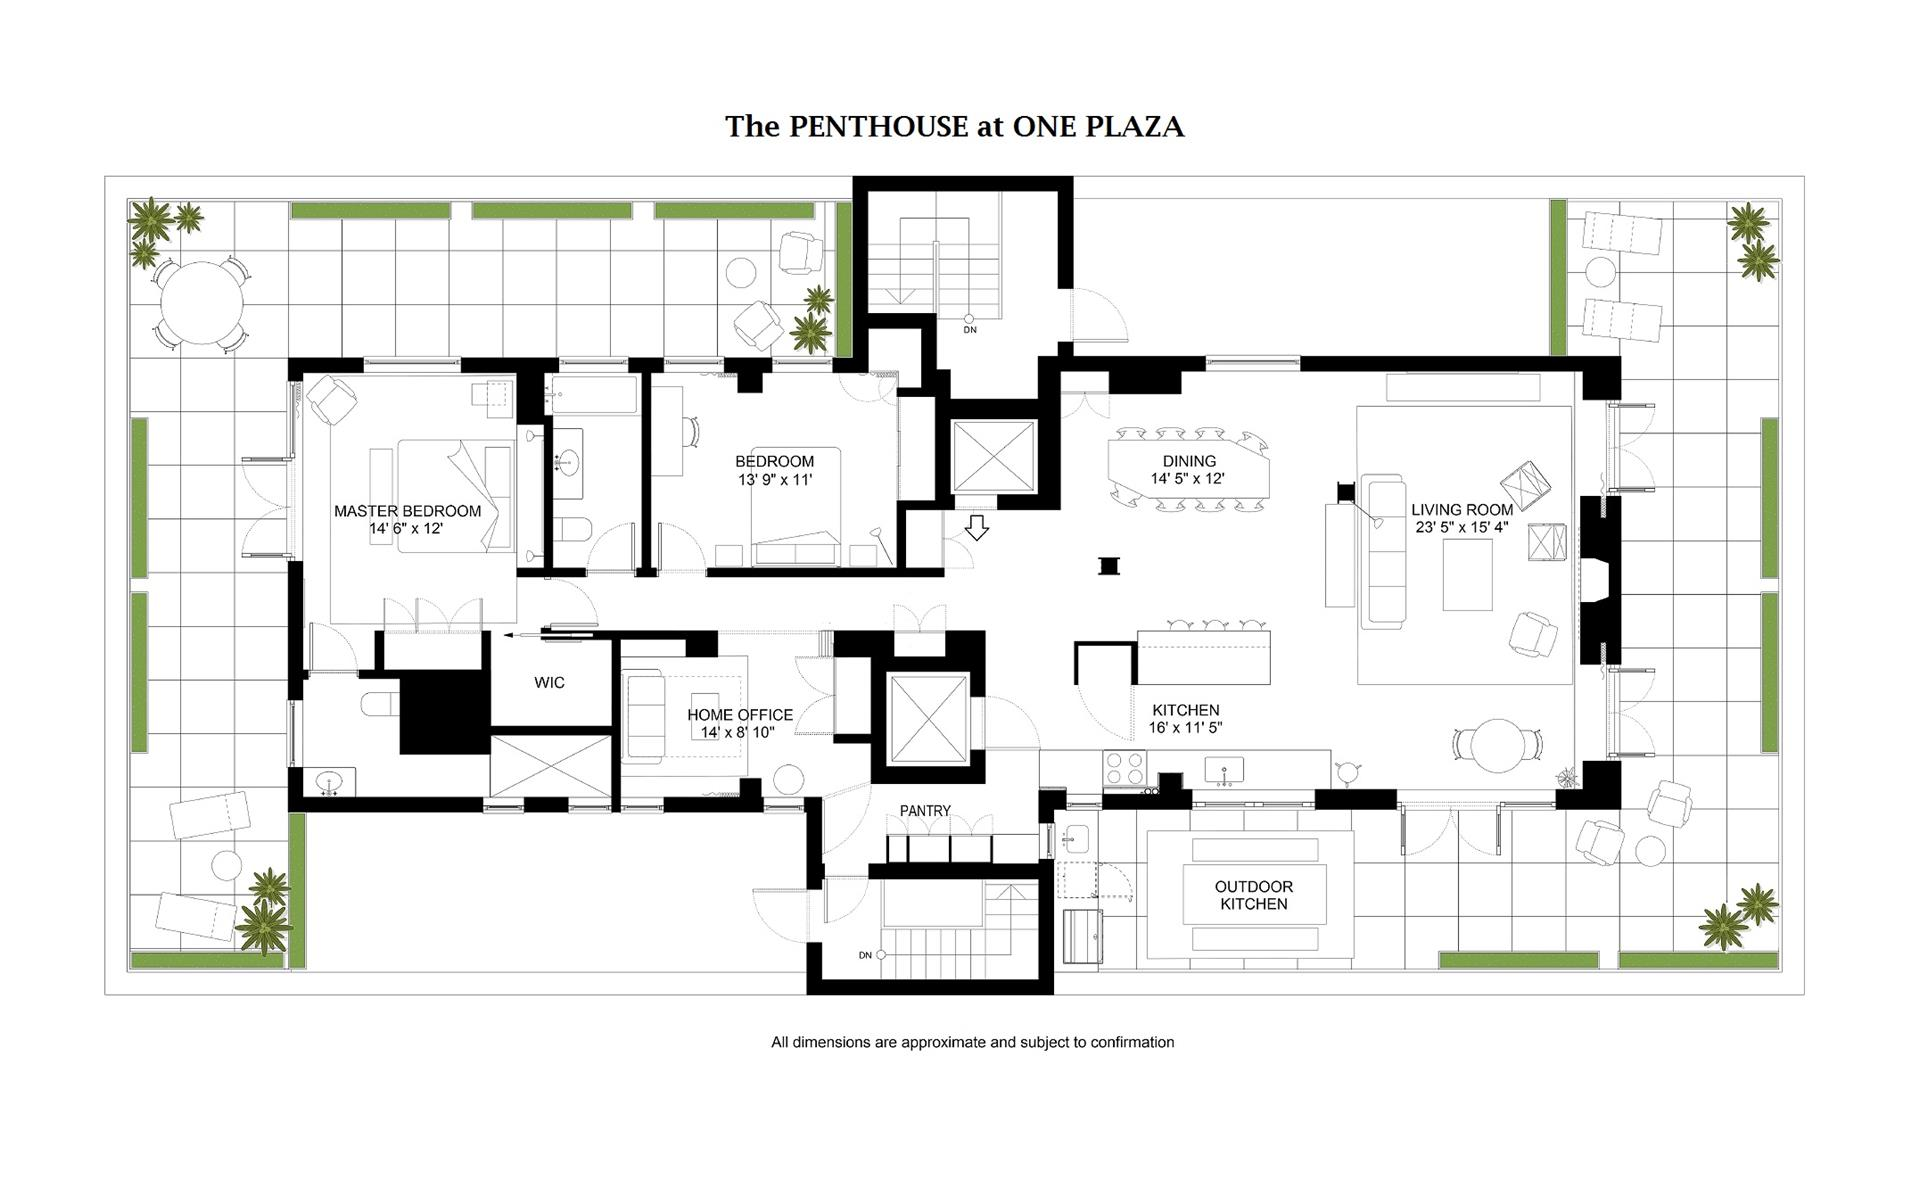 Floor plan of 1 Plaza St West, PENTHOUSE - Park Slope, New York